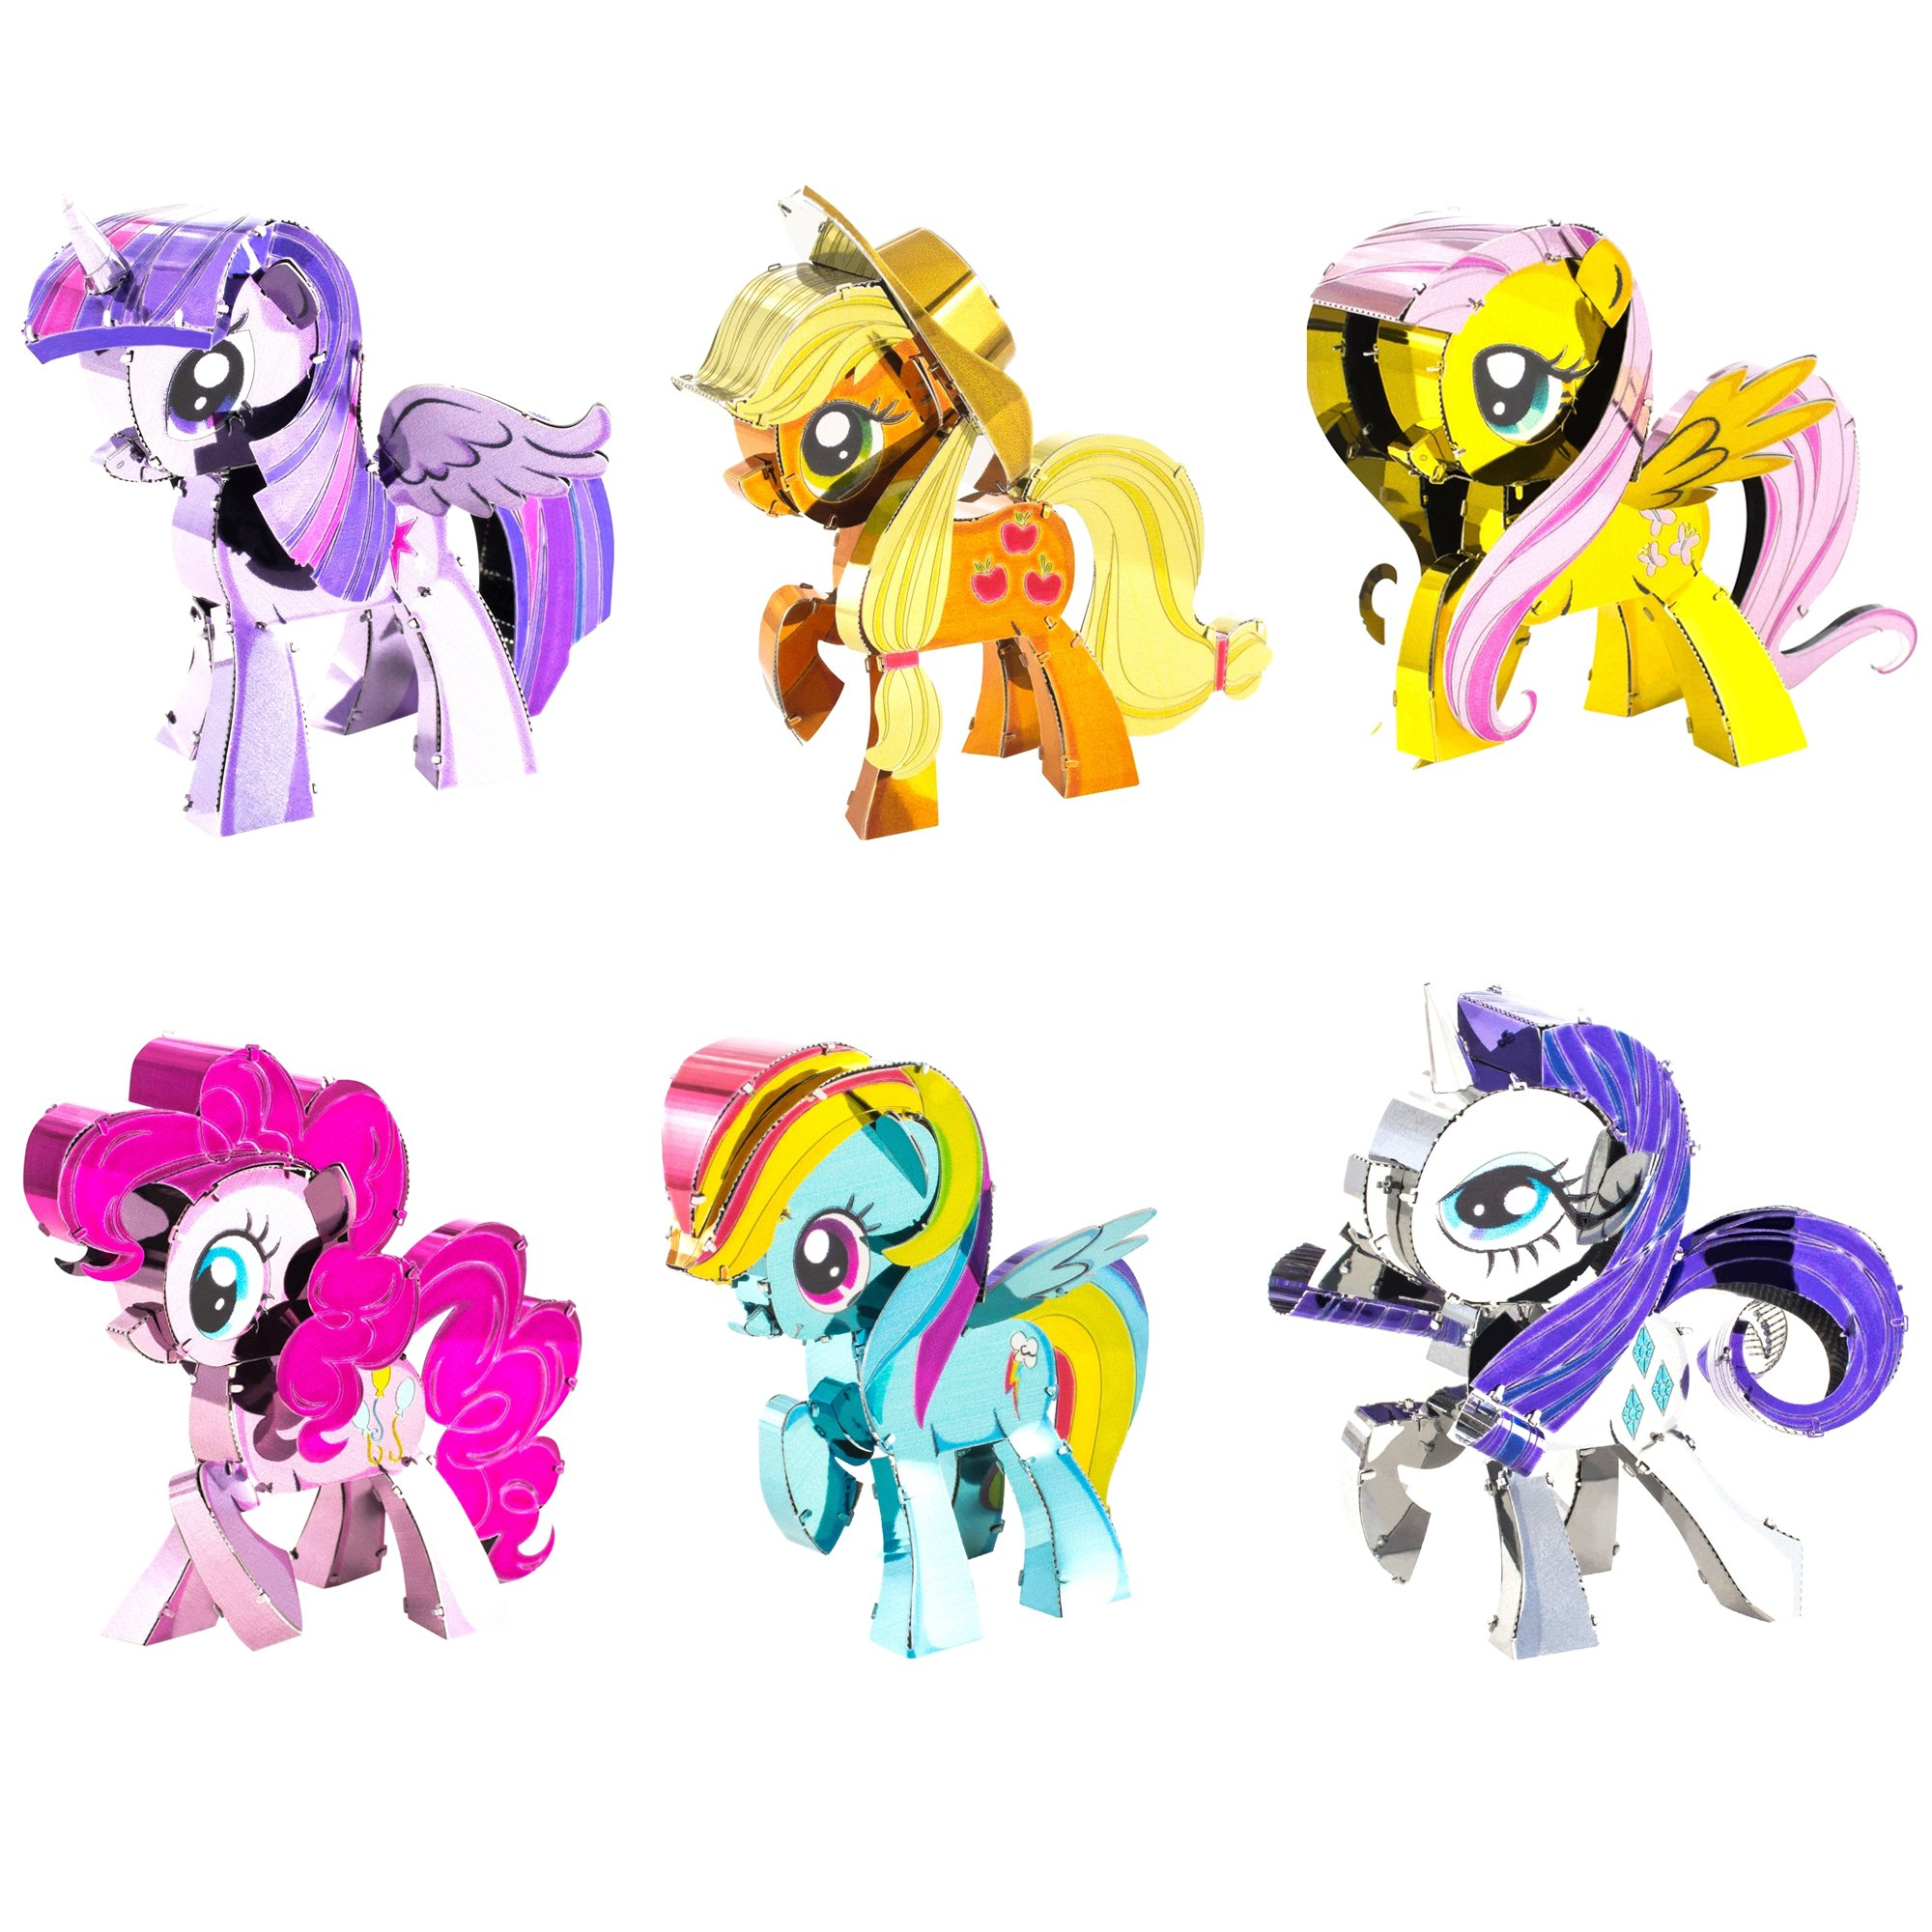 Fascinations Metal Earth 3D Metal Model Kits My Little Pony Complete Set of 6 Applejack - Fluttershy - Pinkie Pie - Rainbow Dash - Rarity - Twilight Sparkle by Fascinations